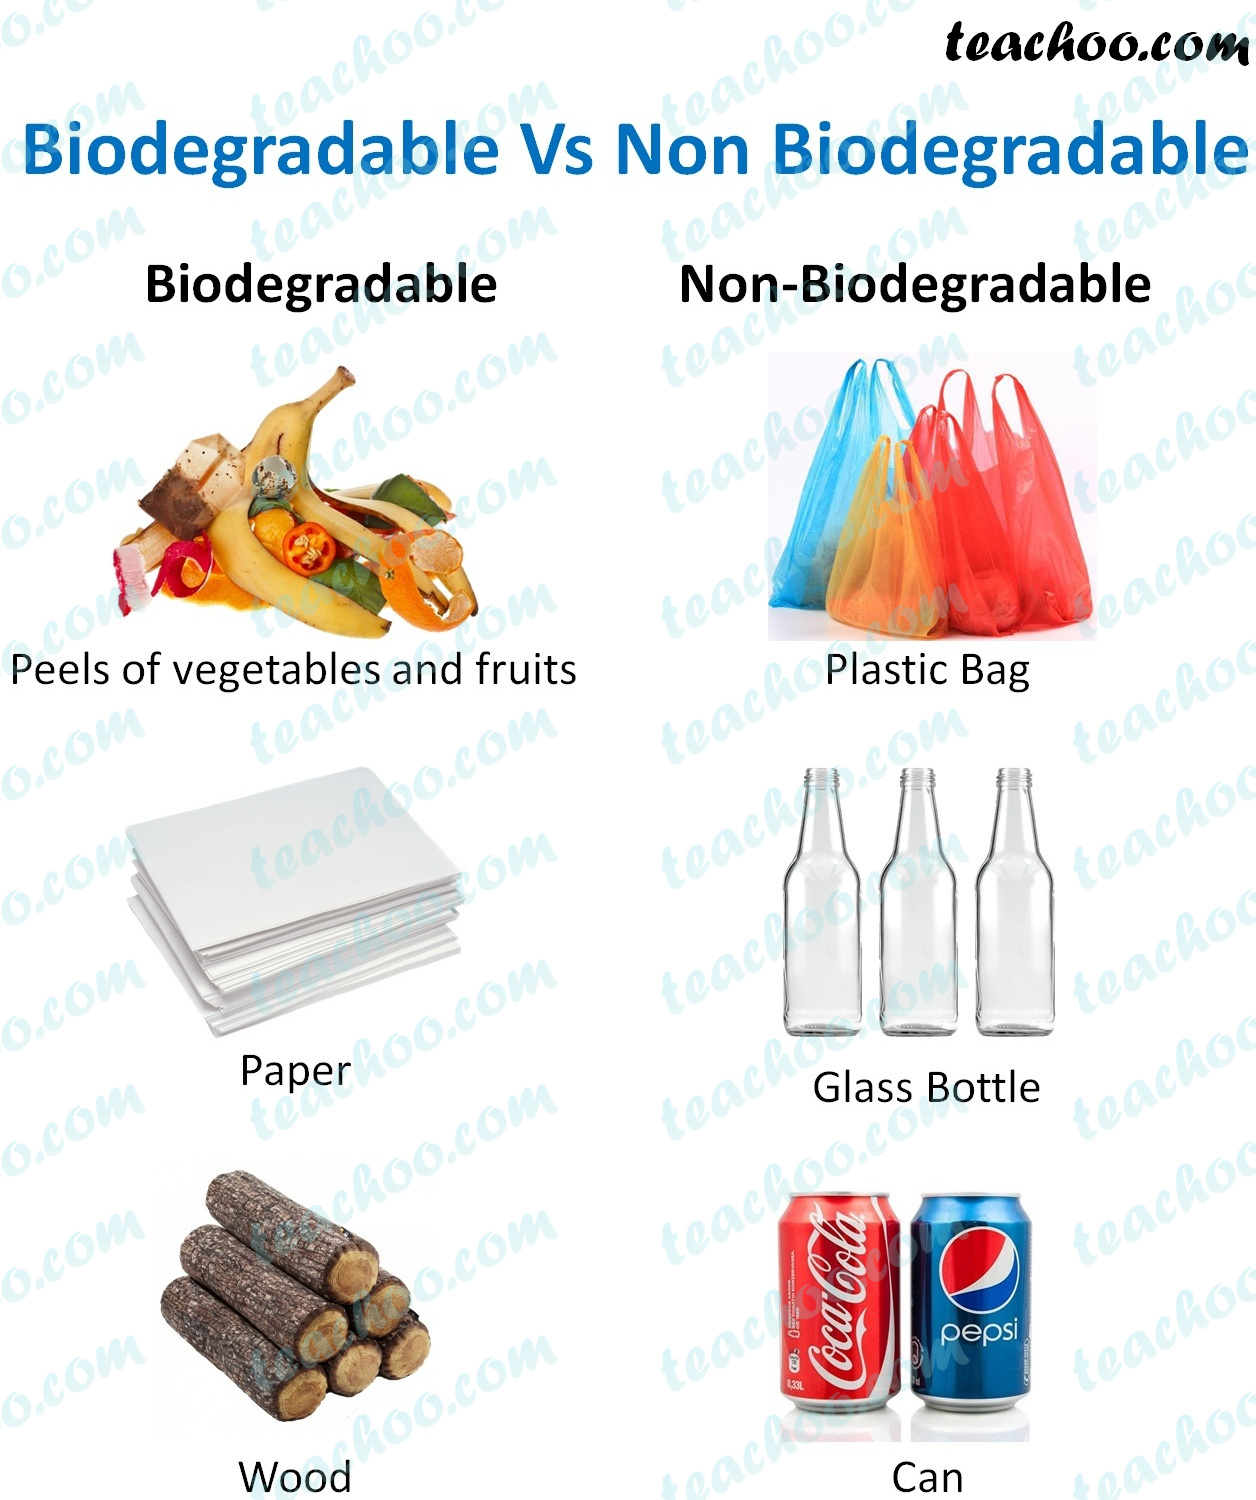 biodegradable-vs-non-biodegradable.jpg